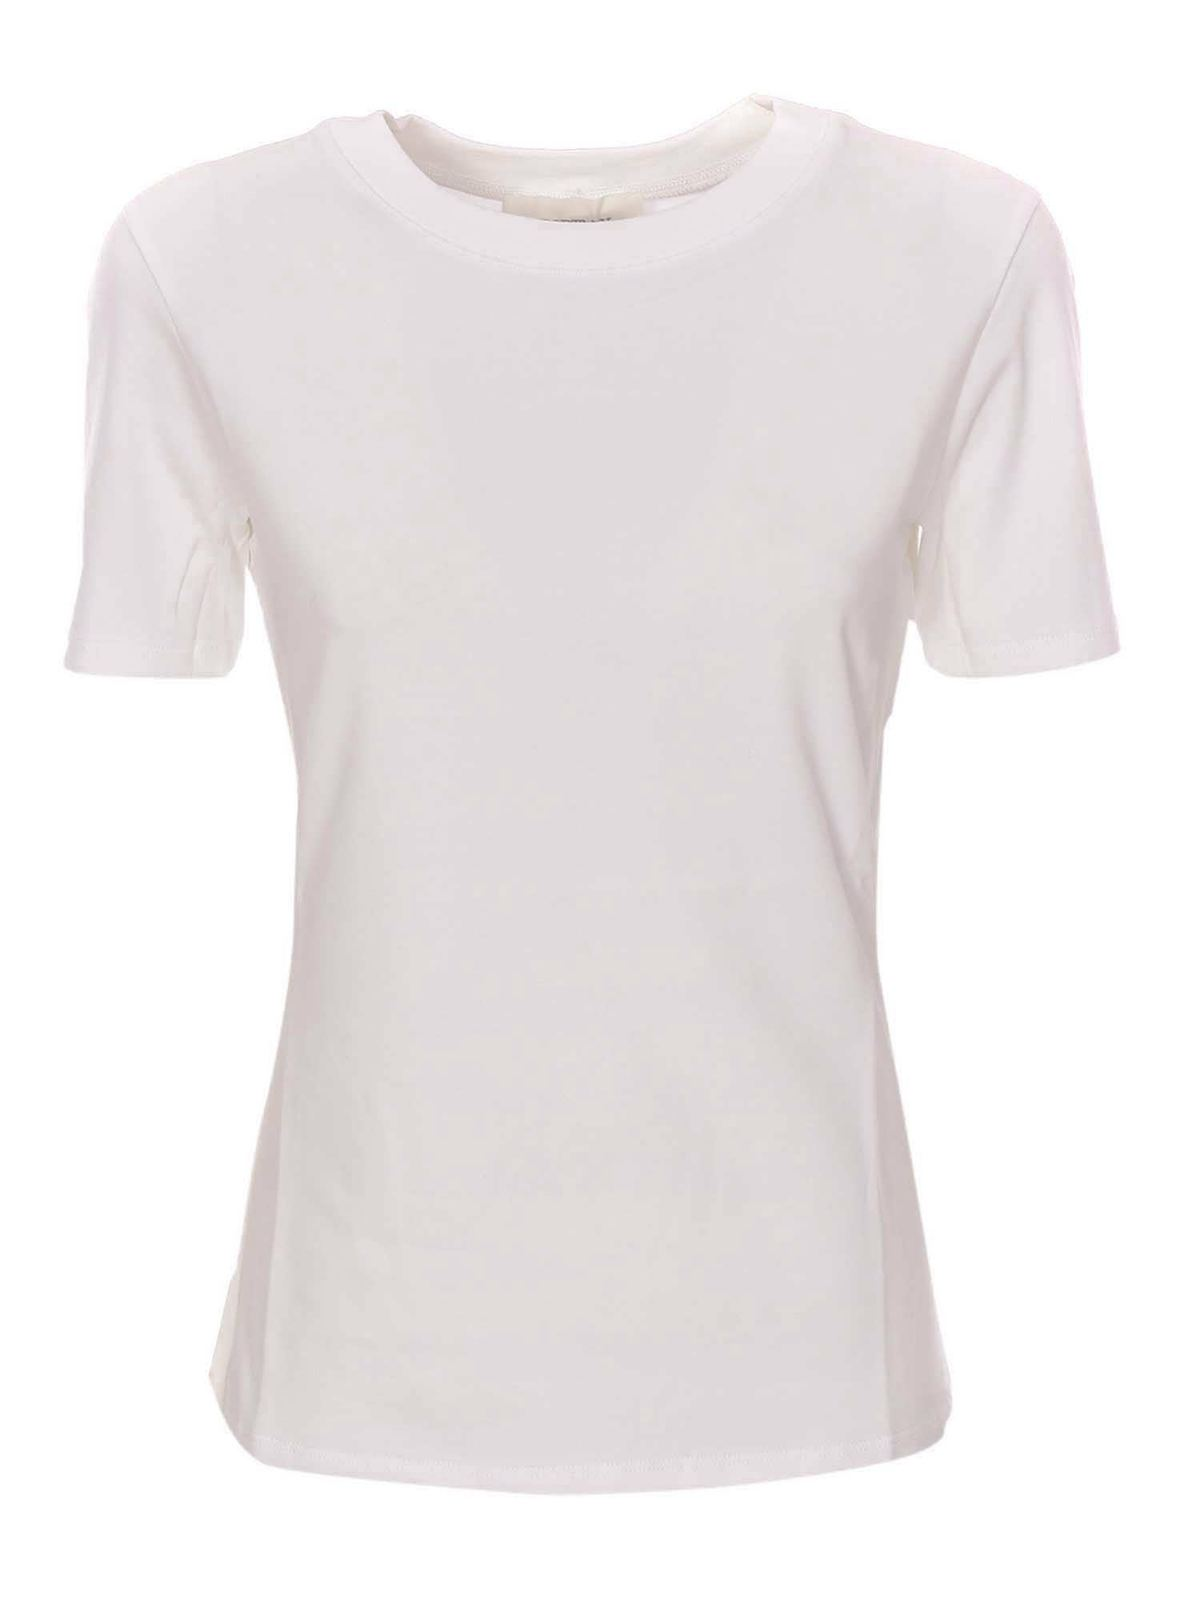 Sportmax ABACO T-SHIRT IN WHITE